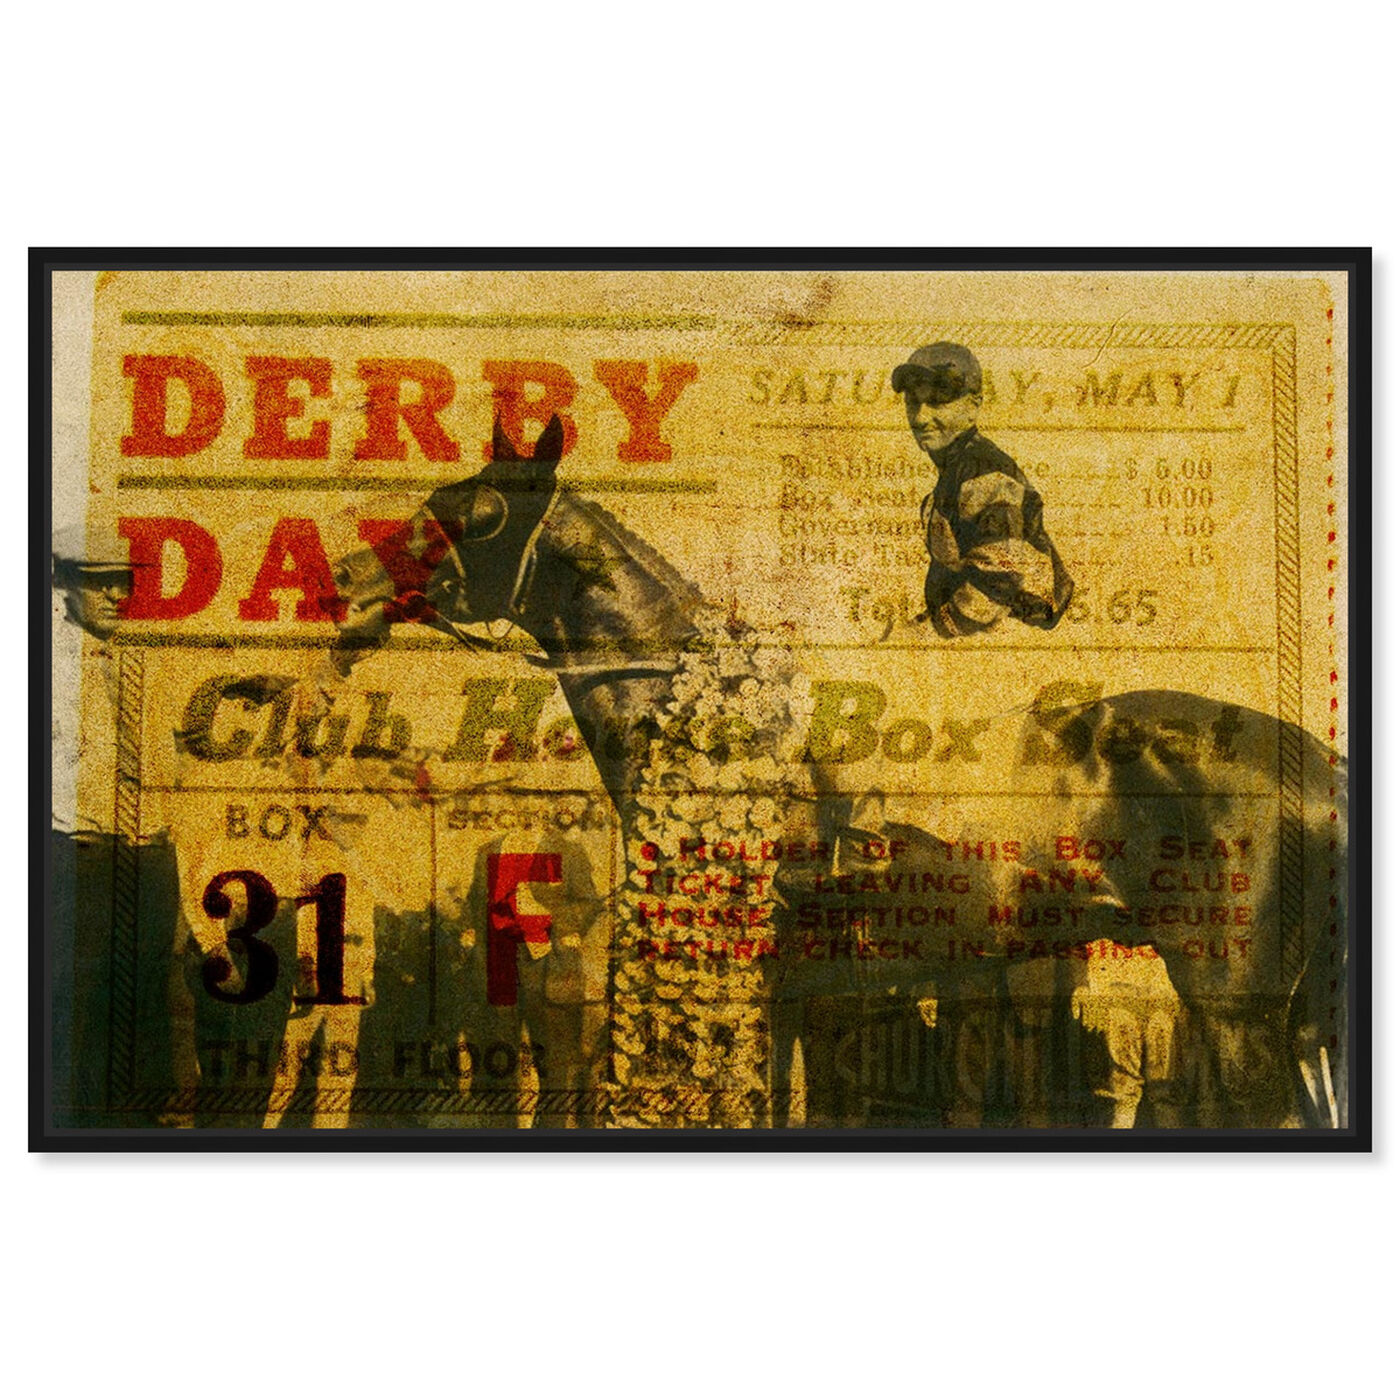 Front view of Derby Day 1943 featuring advertising and posters art.